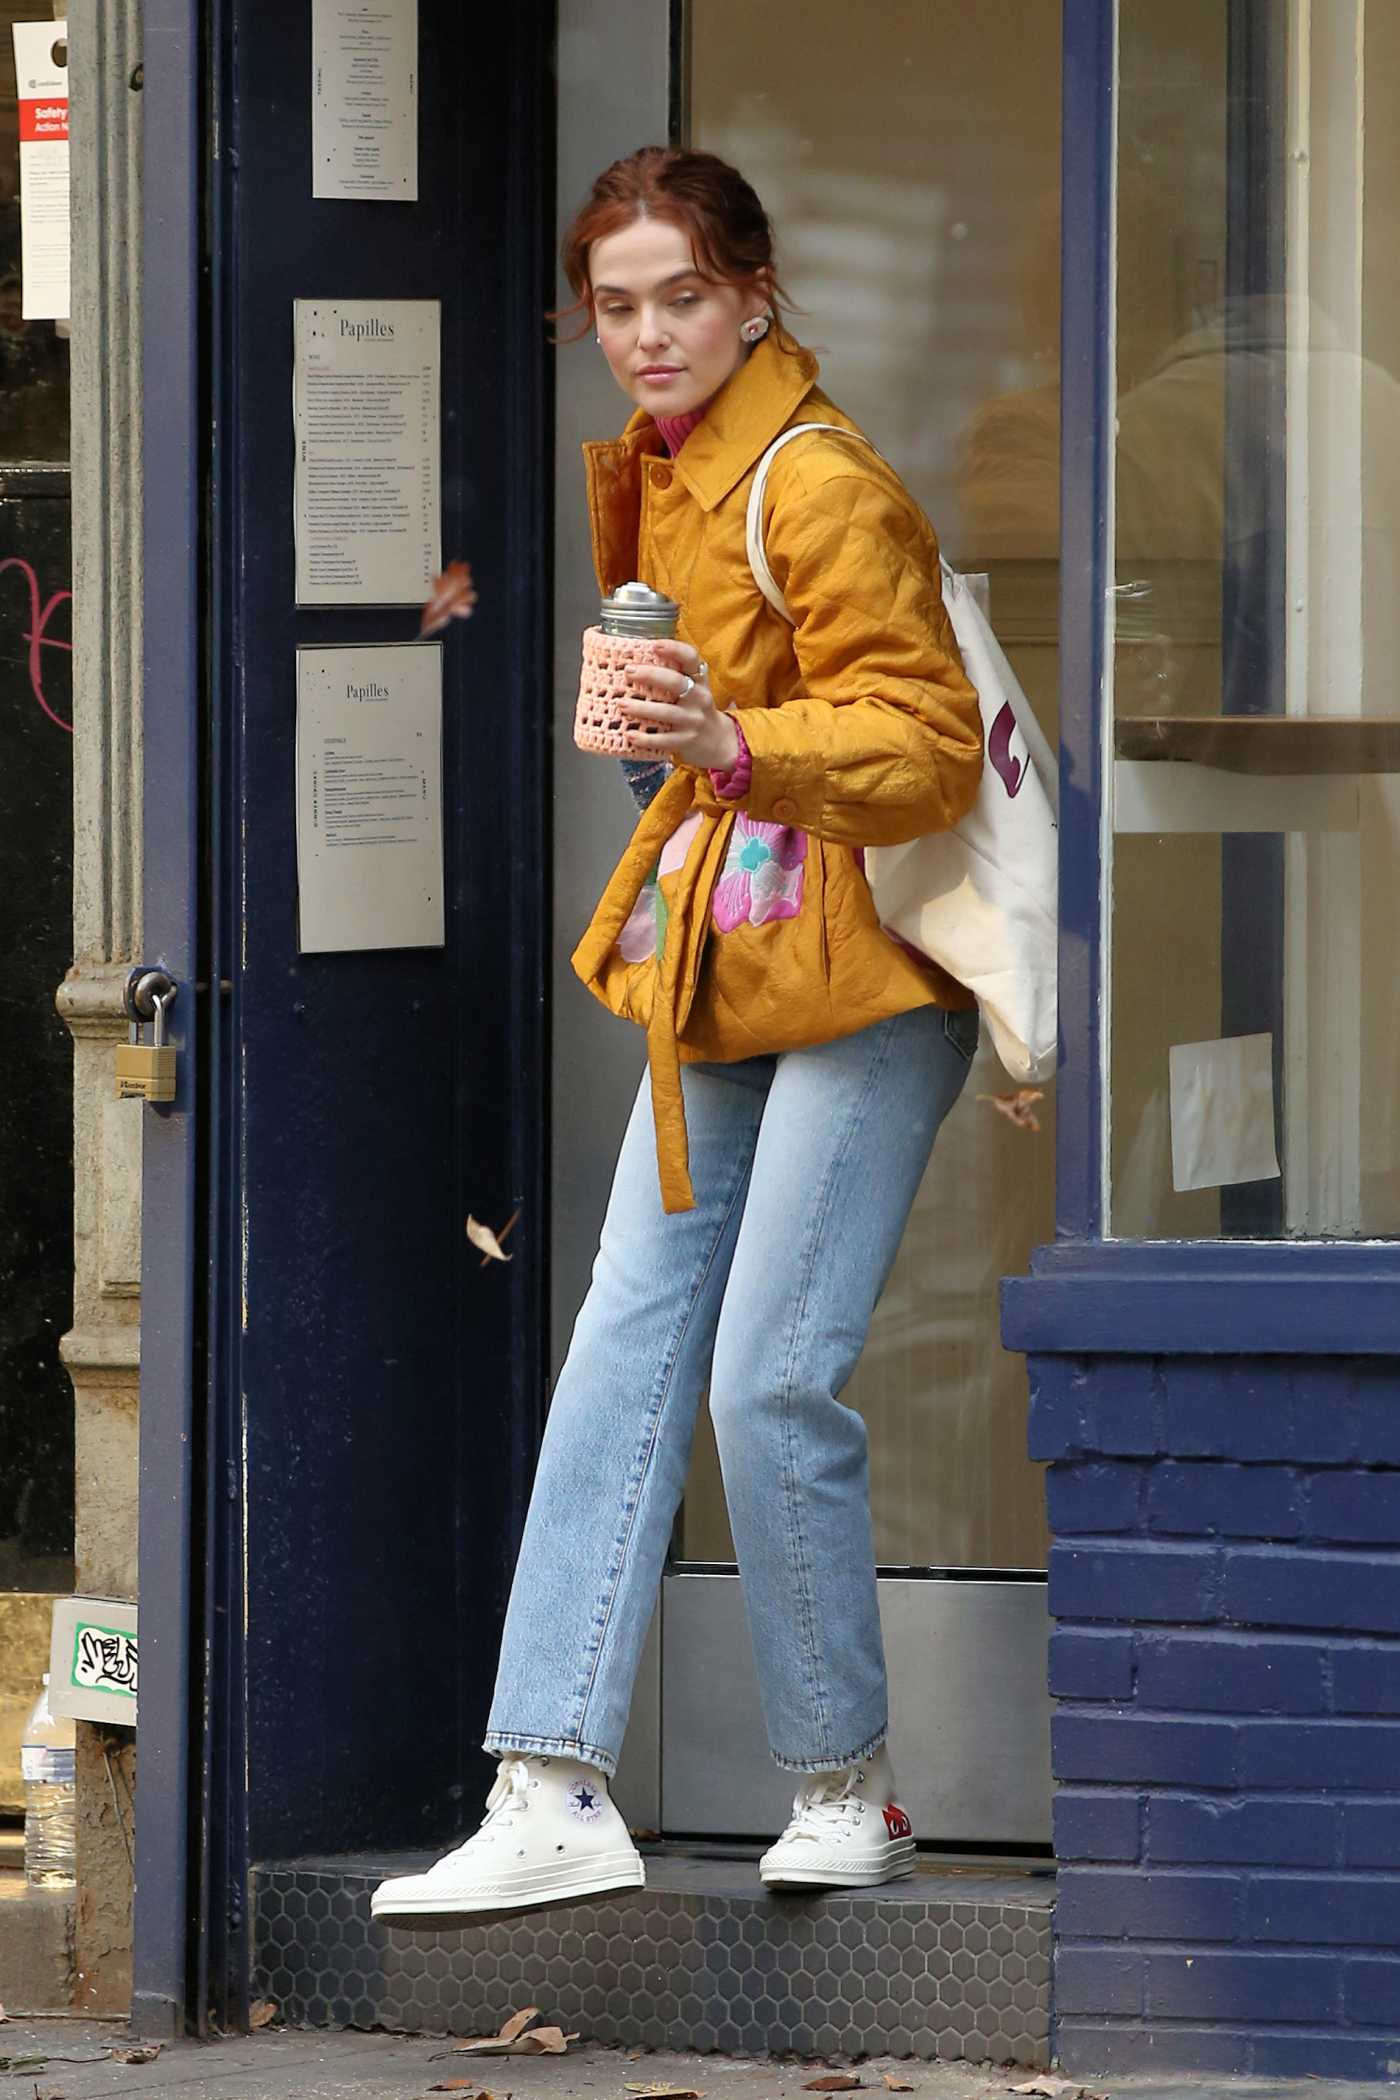 Zoey Deutch in a Yellow Jacket Leaves a Coffee Shop in New York City 12/16/2019